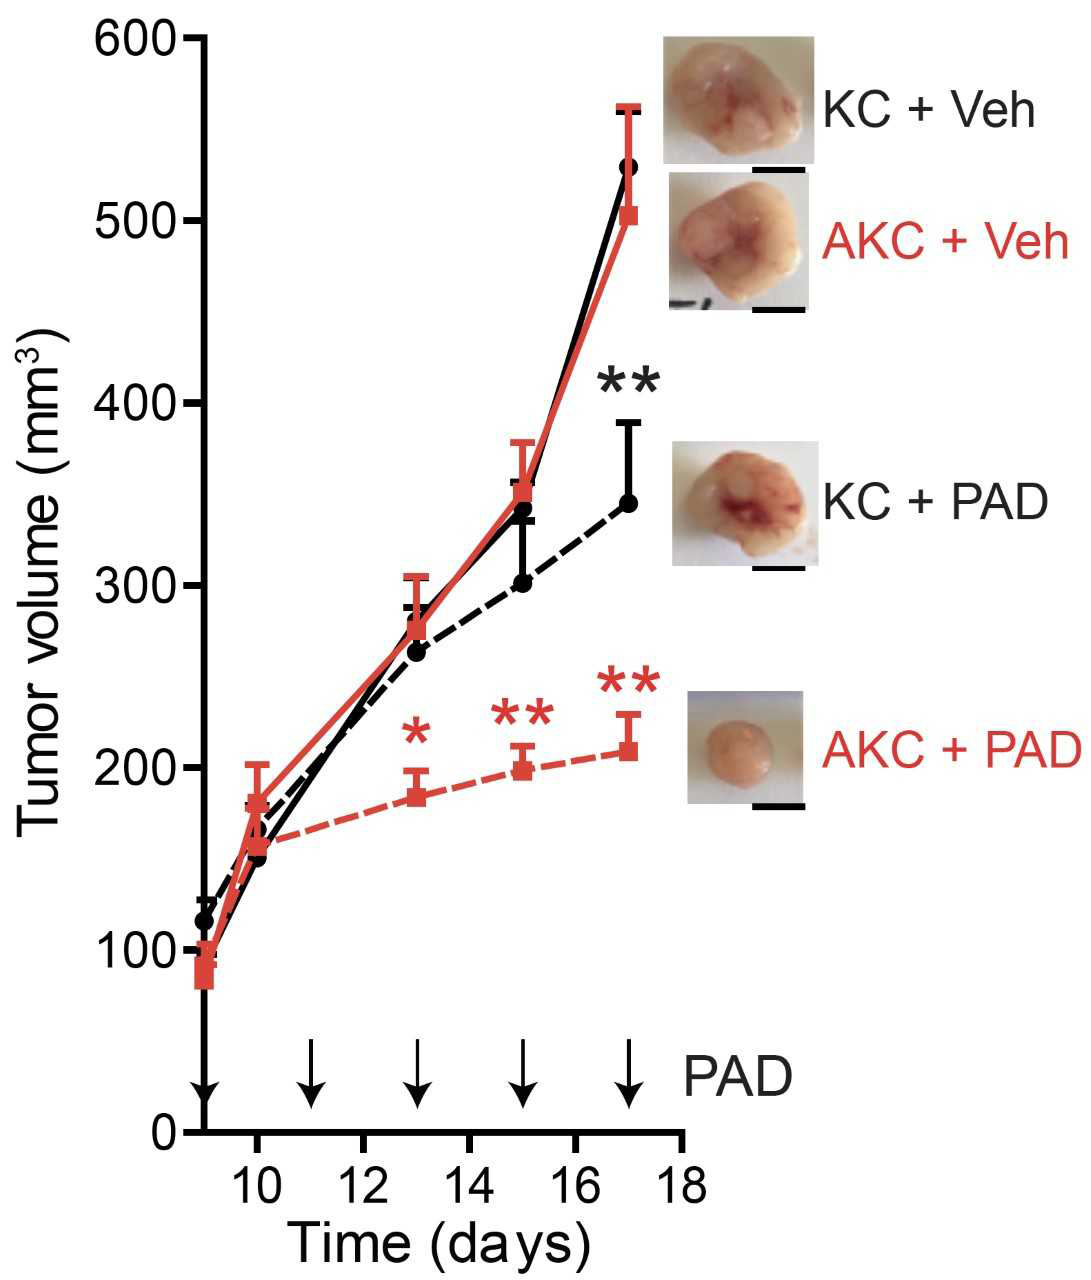 In the mouse model, the tumours with additional ATM loss (AKC) react significantly better to the therapy combination with PARP-, ATR- and DNA-PK inhibitors (PAD) than the generally used controls with simple KRAS mutation (KC)